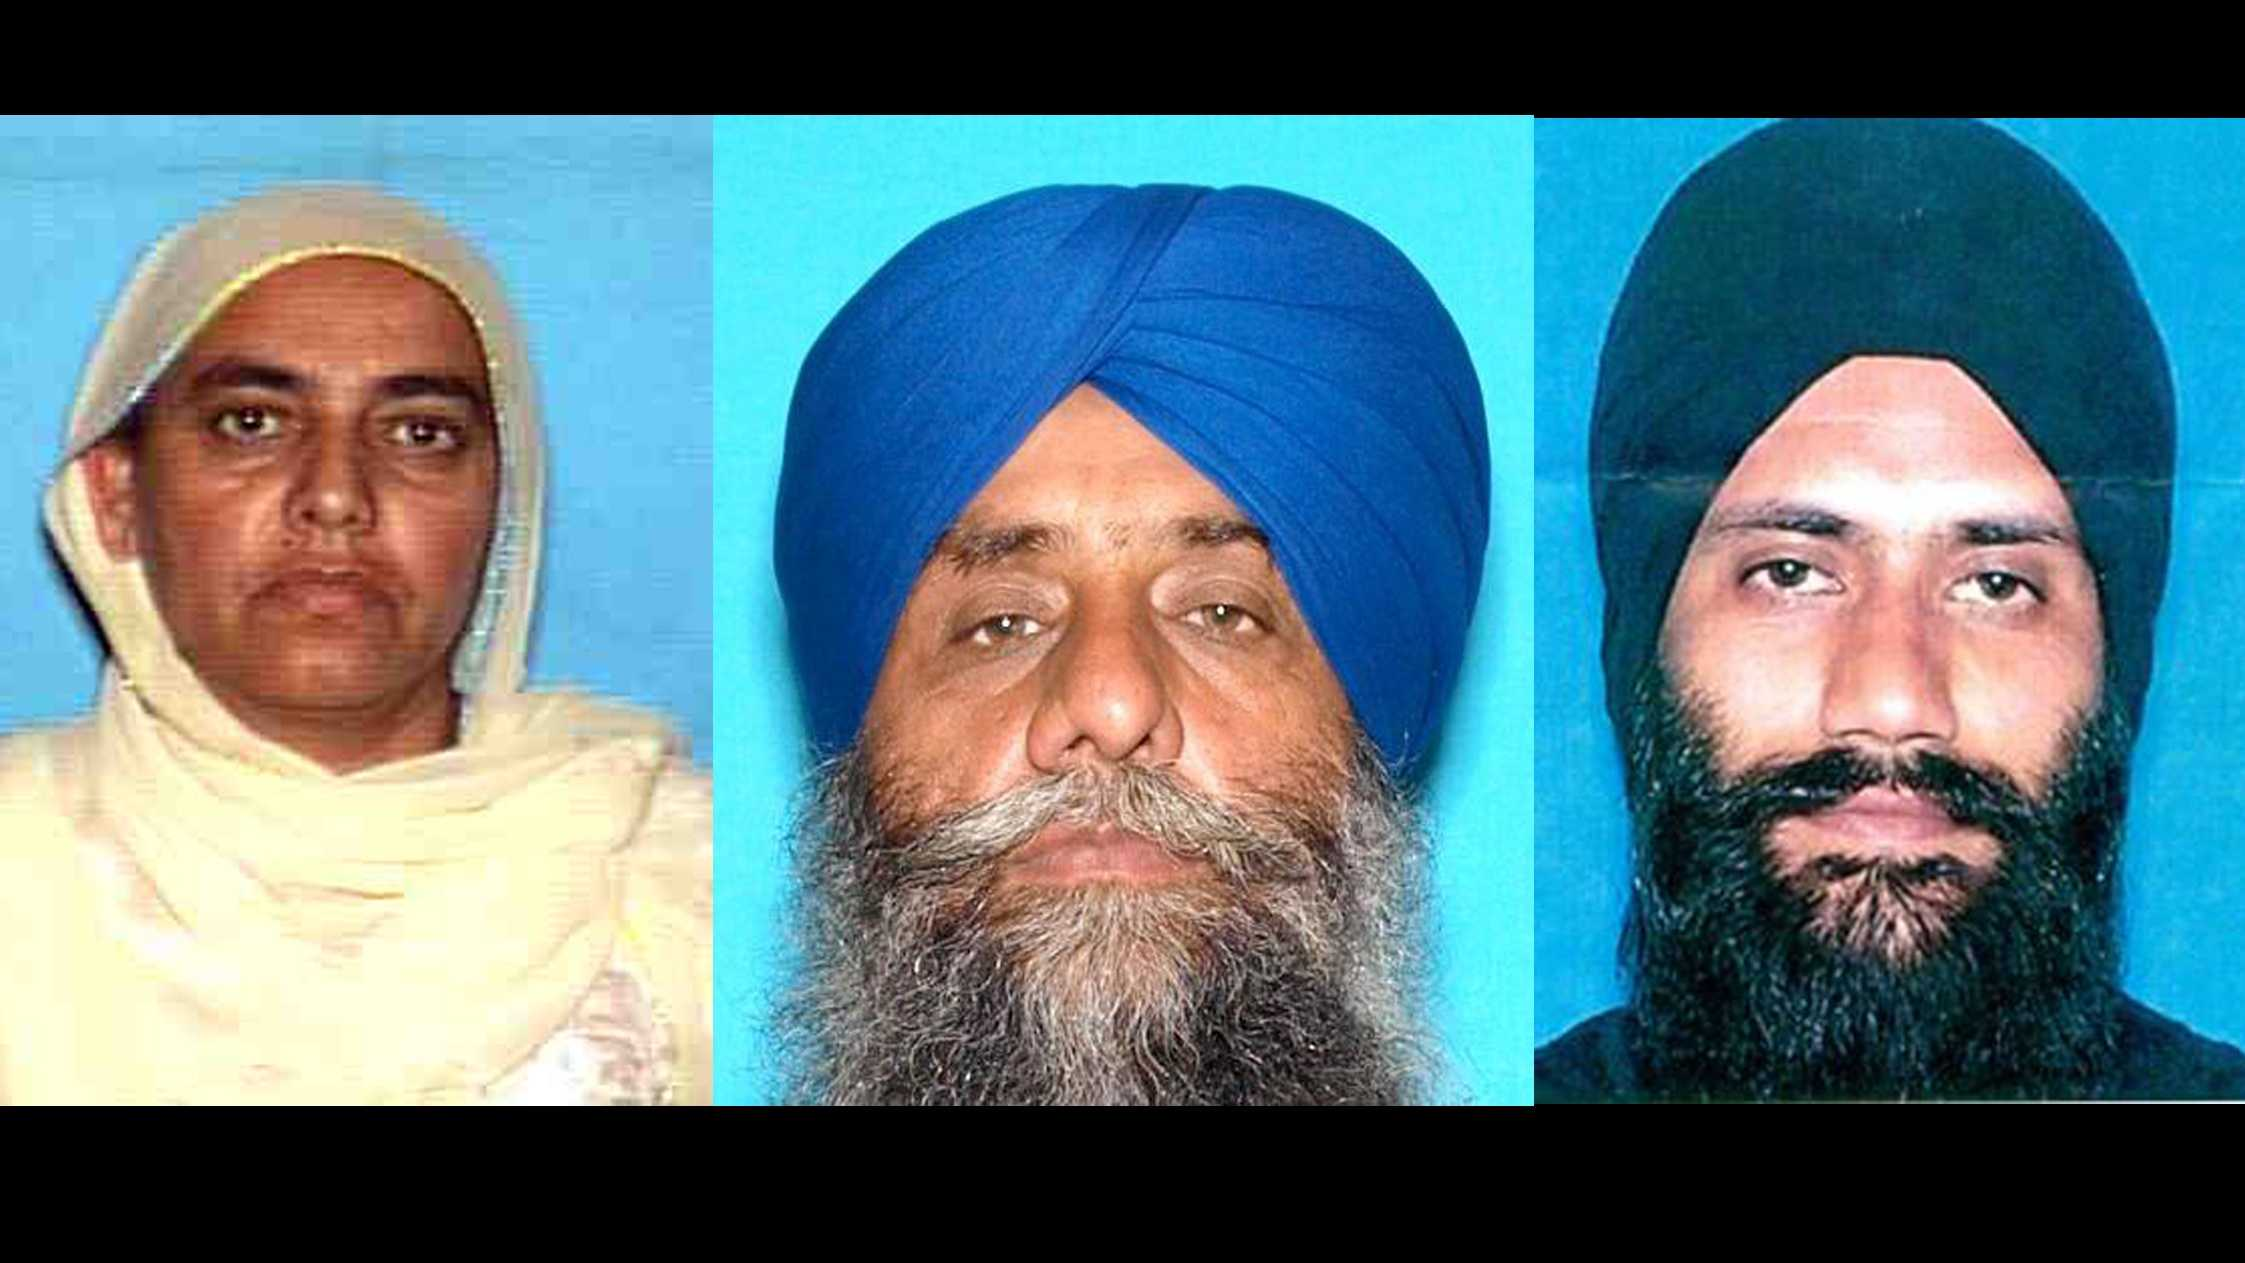 Balwinder Kaur Bagri (left), Gurdev Singh (middle) and Sandeep Singh (right) were arrested in connection to a brawl in a Sikh temple, the Turlock Police Department said.